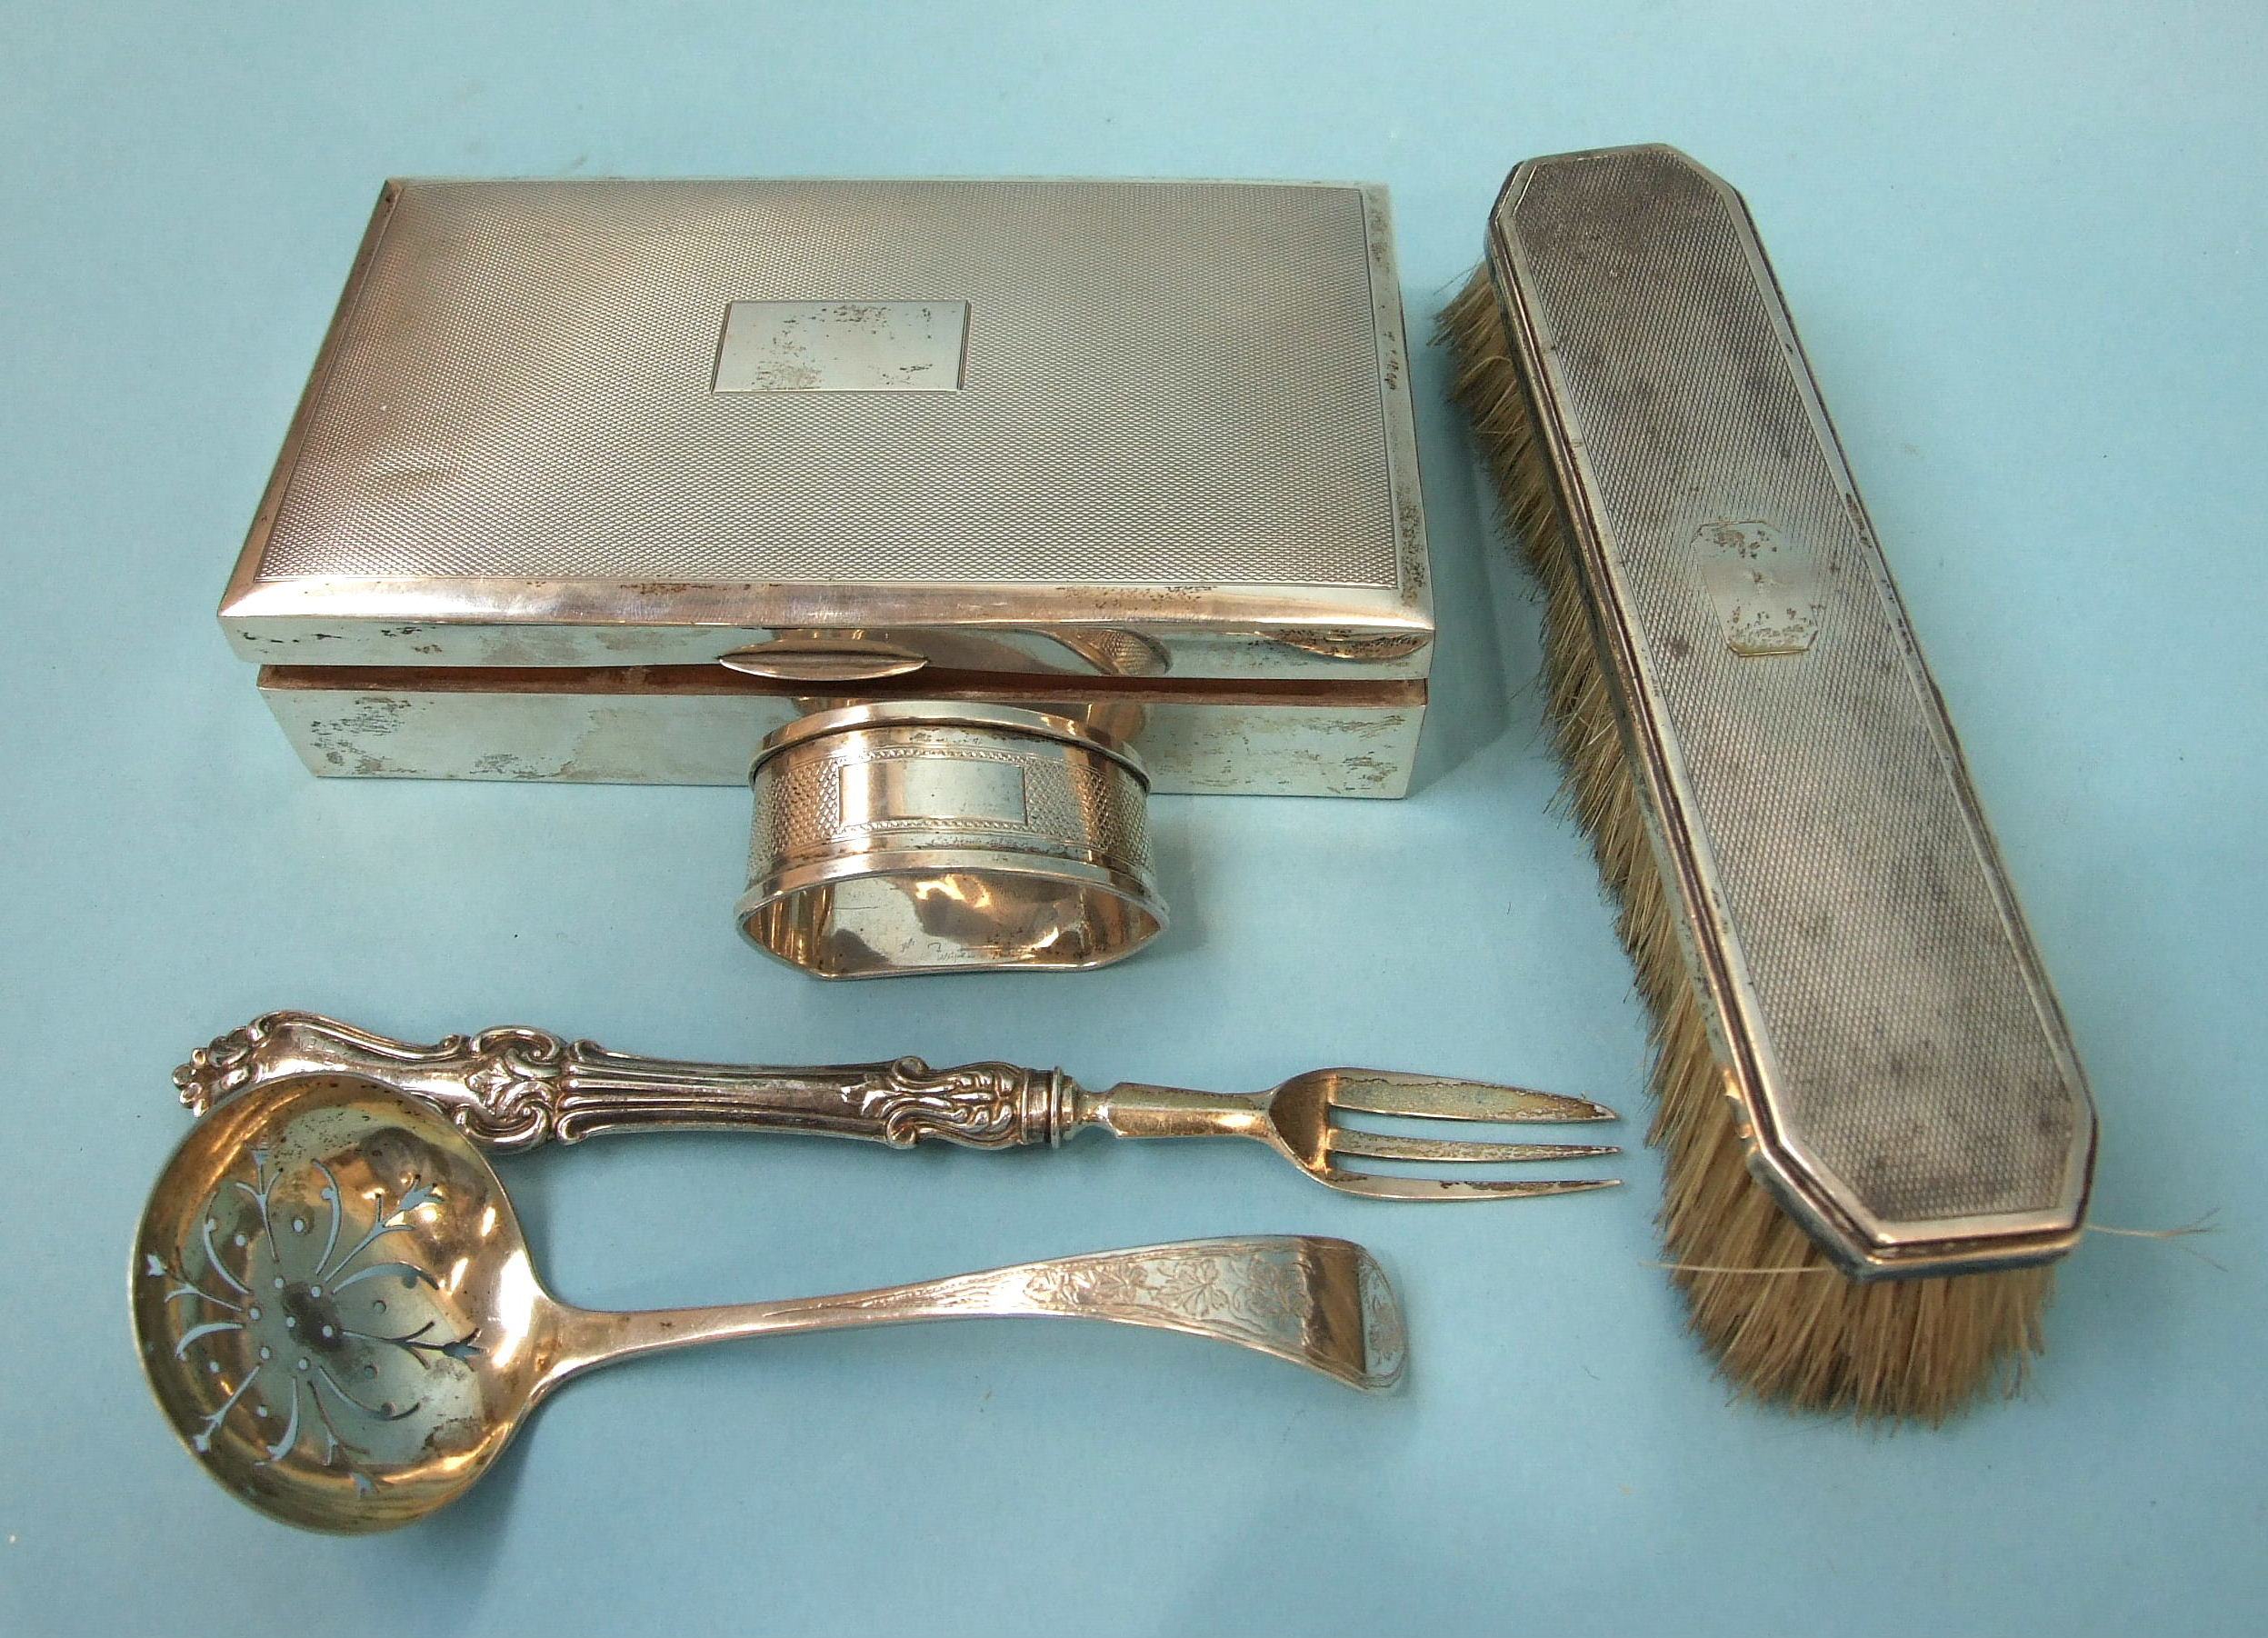 Lot 319 - An engine-turned silver cigarette box, (dented), Birmingham 1935, 9 x 15 x 3.5cm, a silver sifter